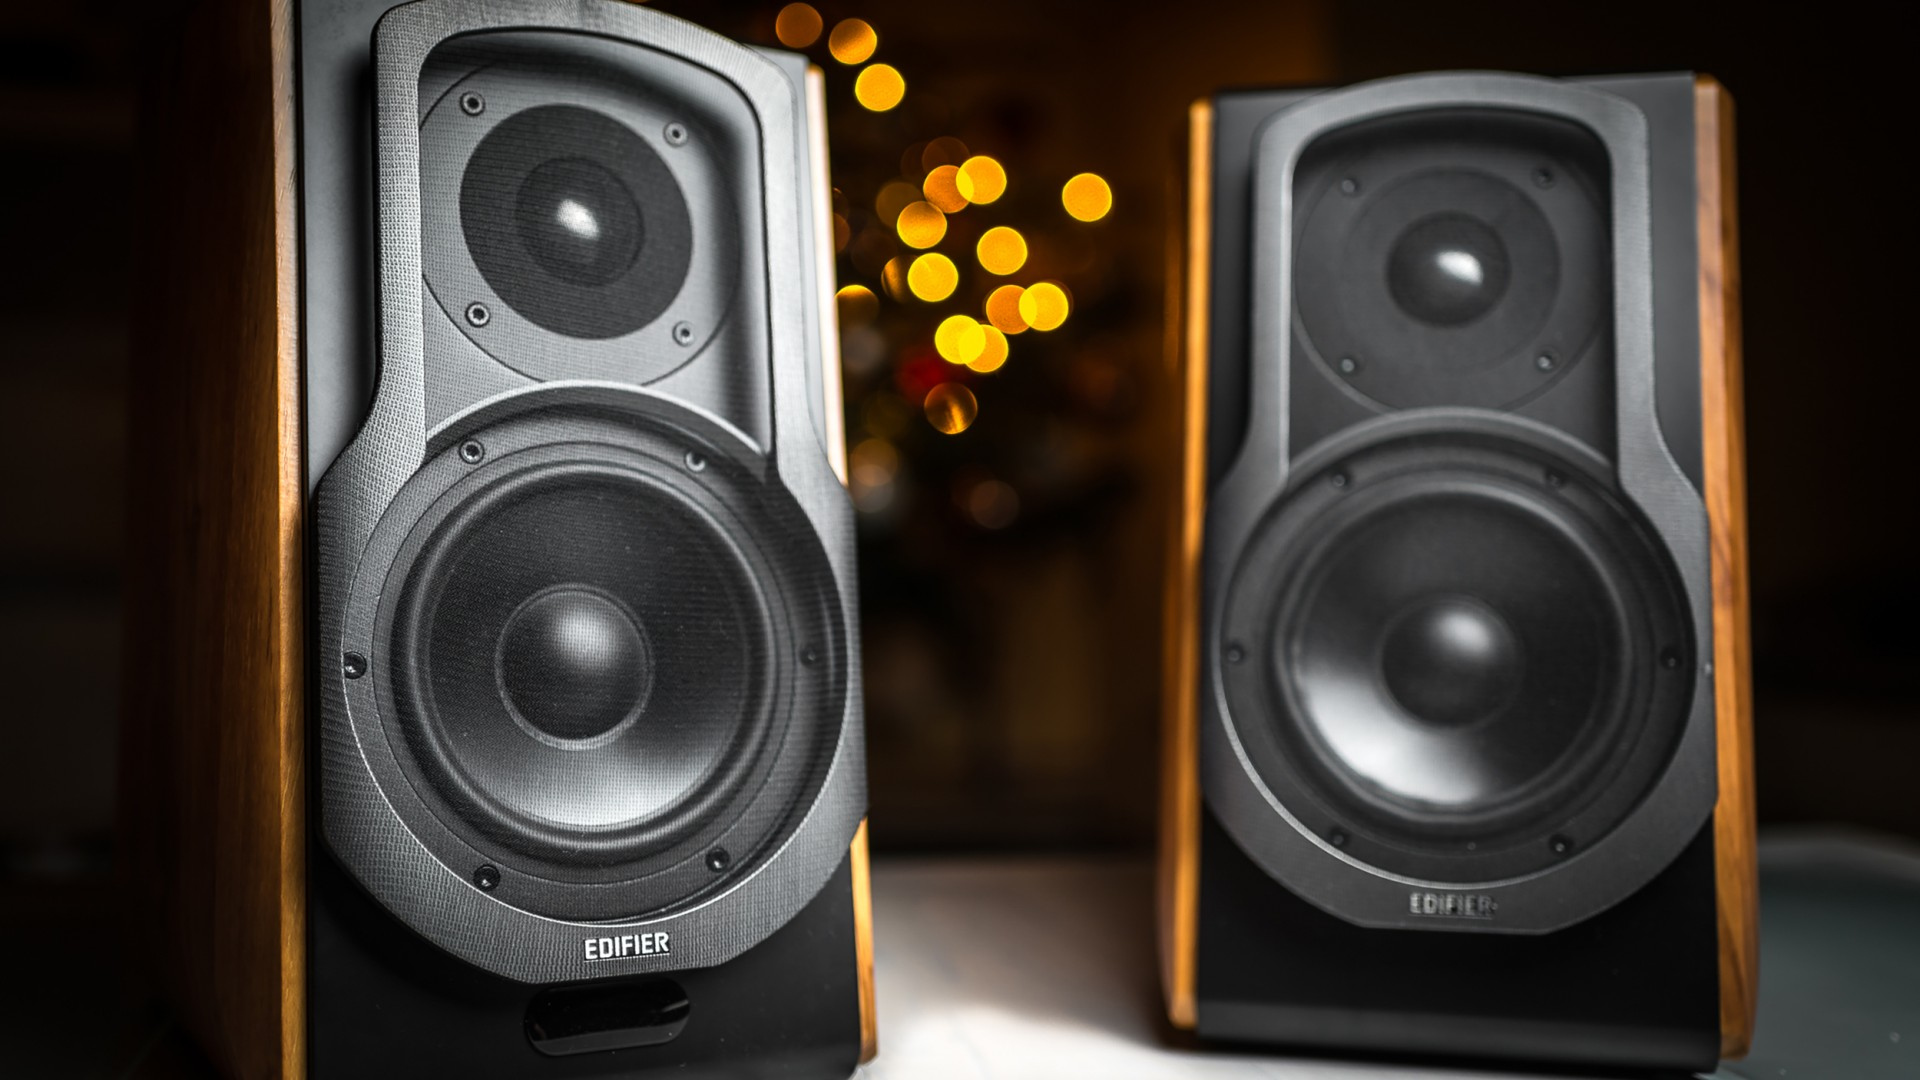 Edifier S1000db Speakers Stunning Design Classic Look